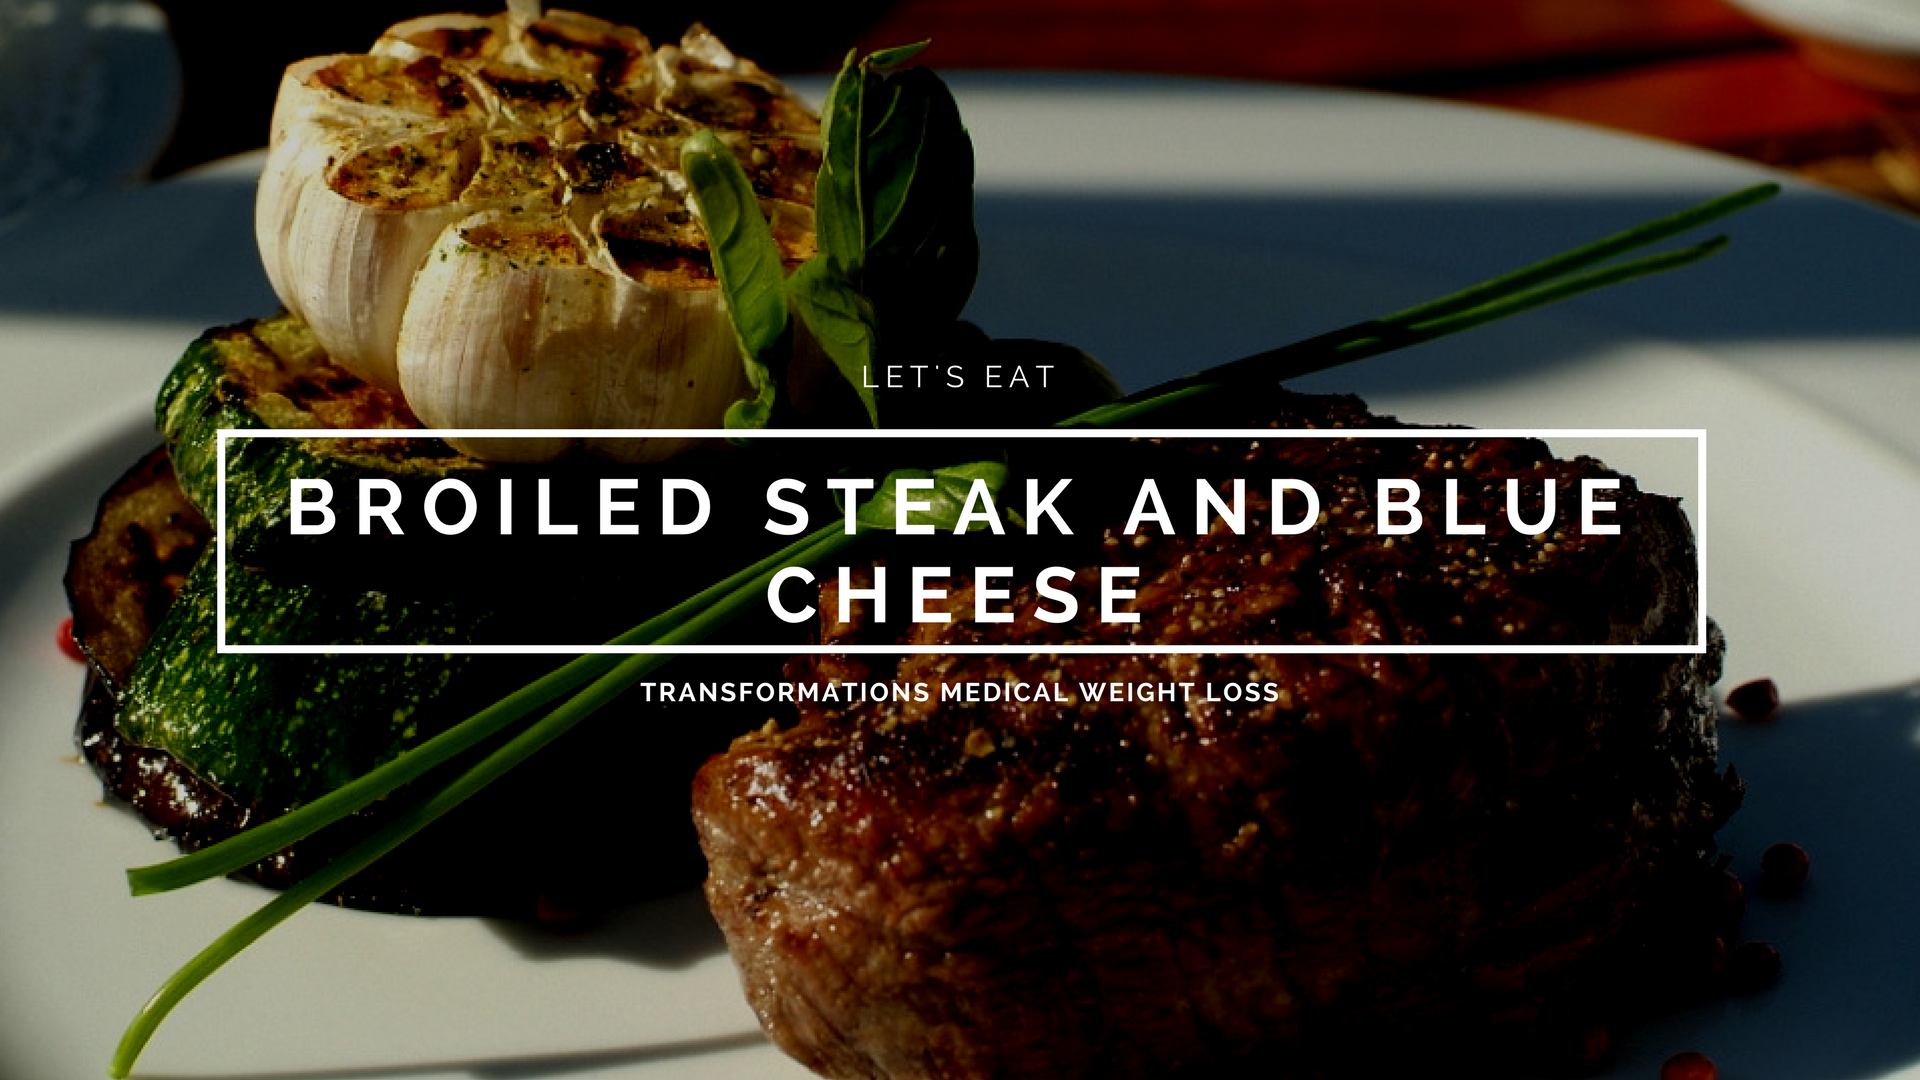 Broiled Steak and Blue Cheese